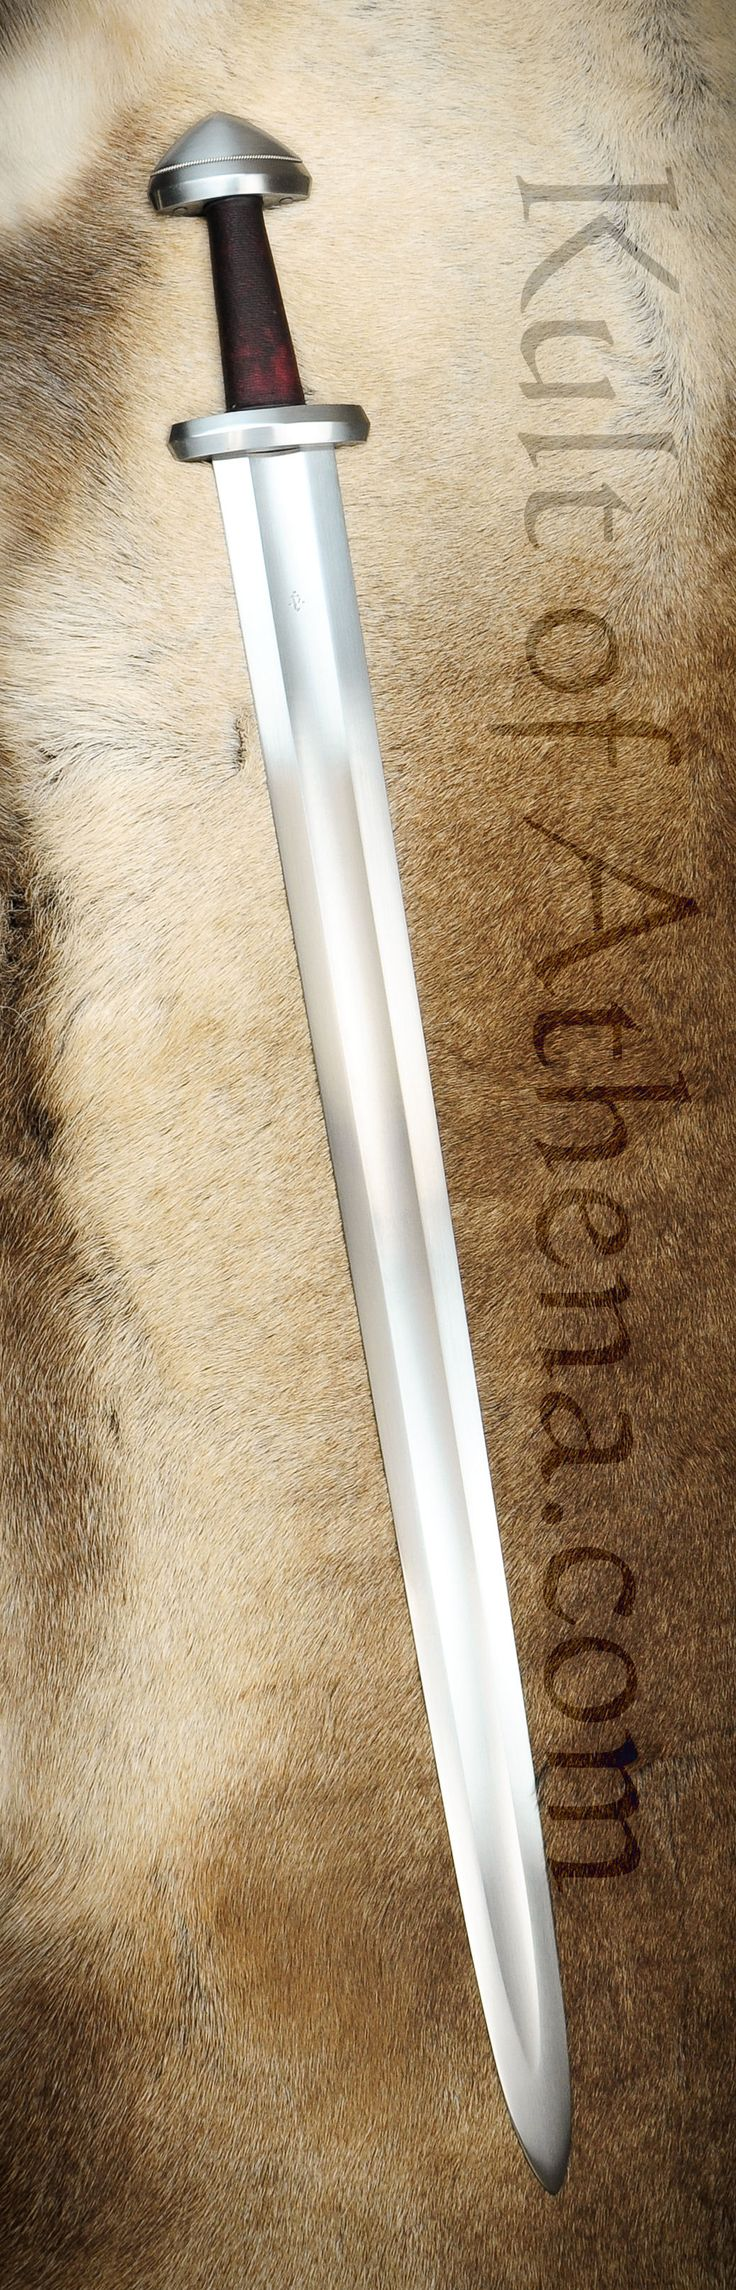 Albion Hersir Viking Sword, I'd take one of these over that Japanese katana bullshit any day. This is a real man's sword.